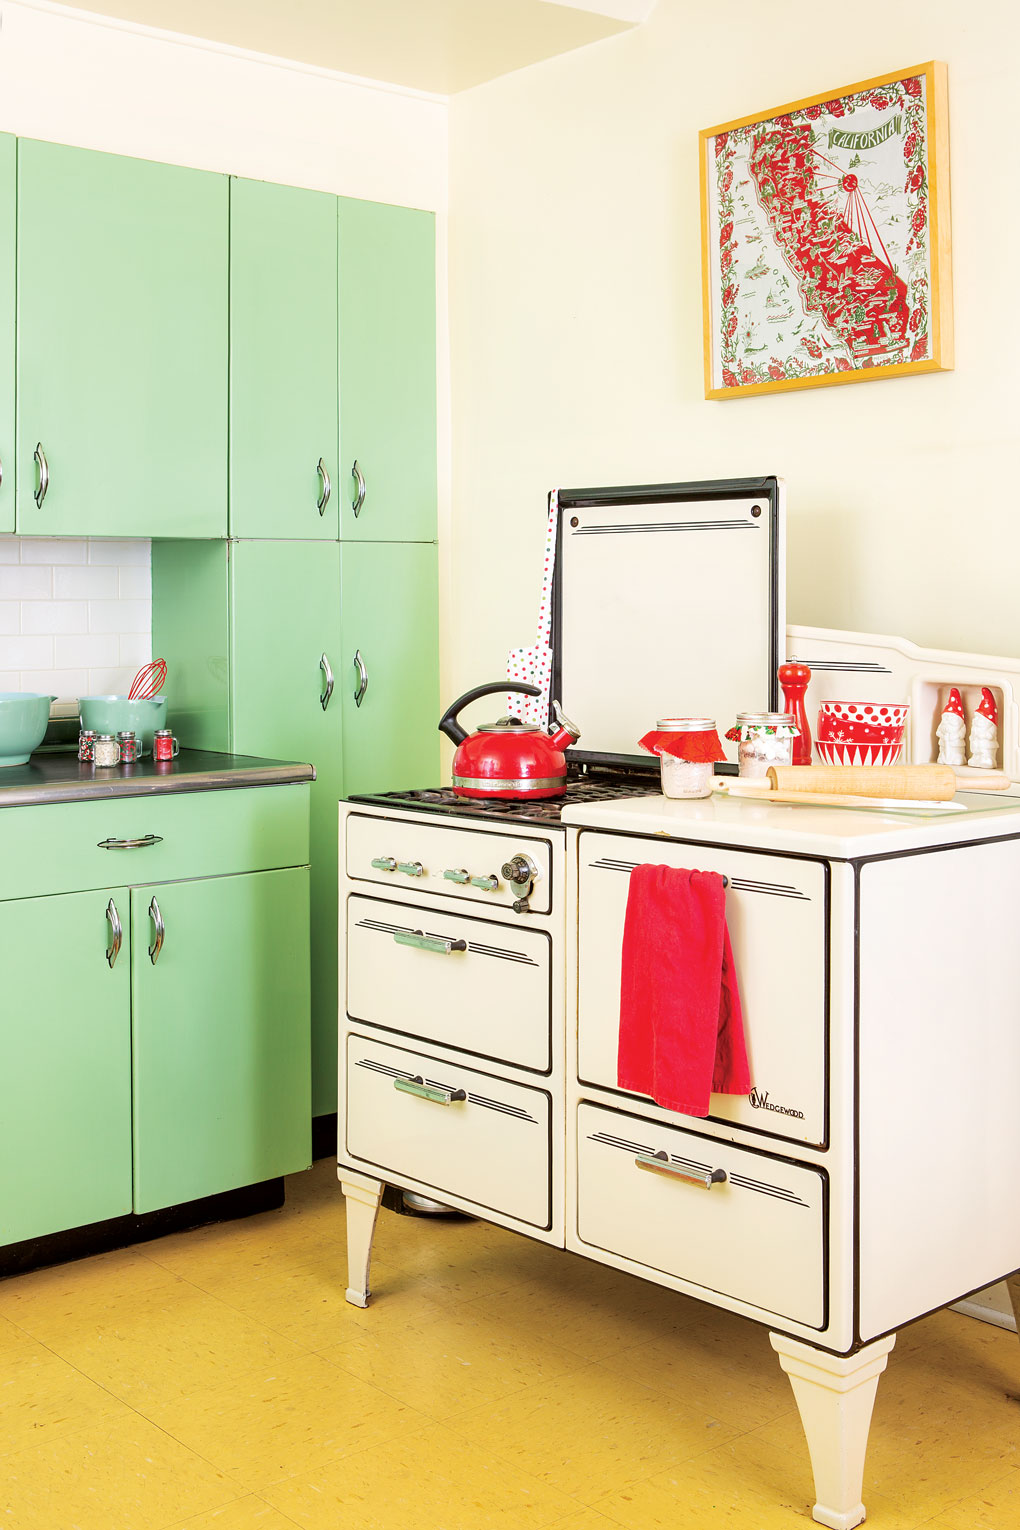 Mint green cabinetry and an antique Wedgewood gas stove in white.